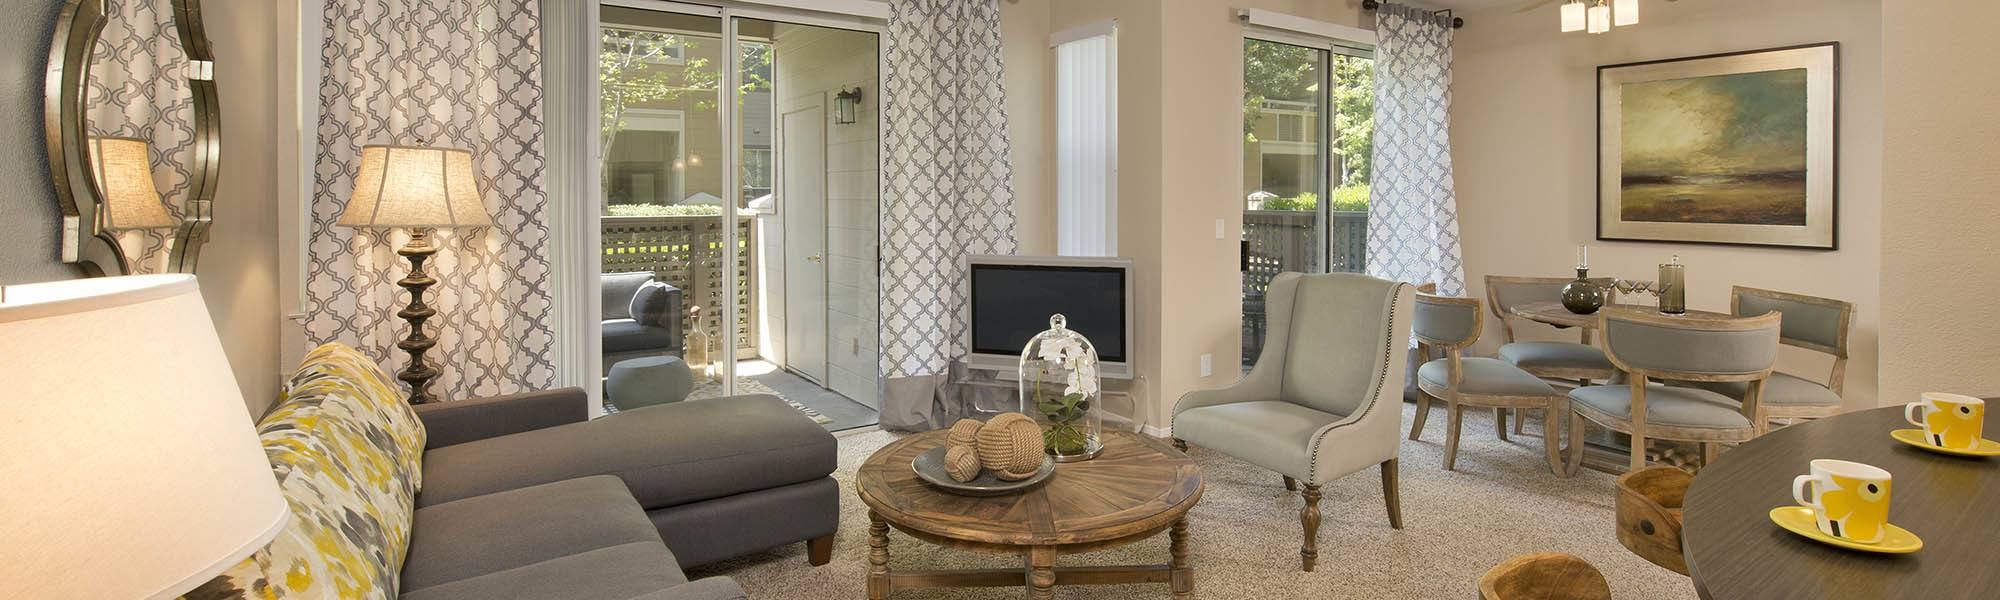 View our floor plans at Rosewalk on our website